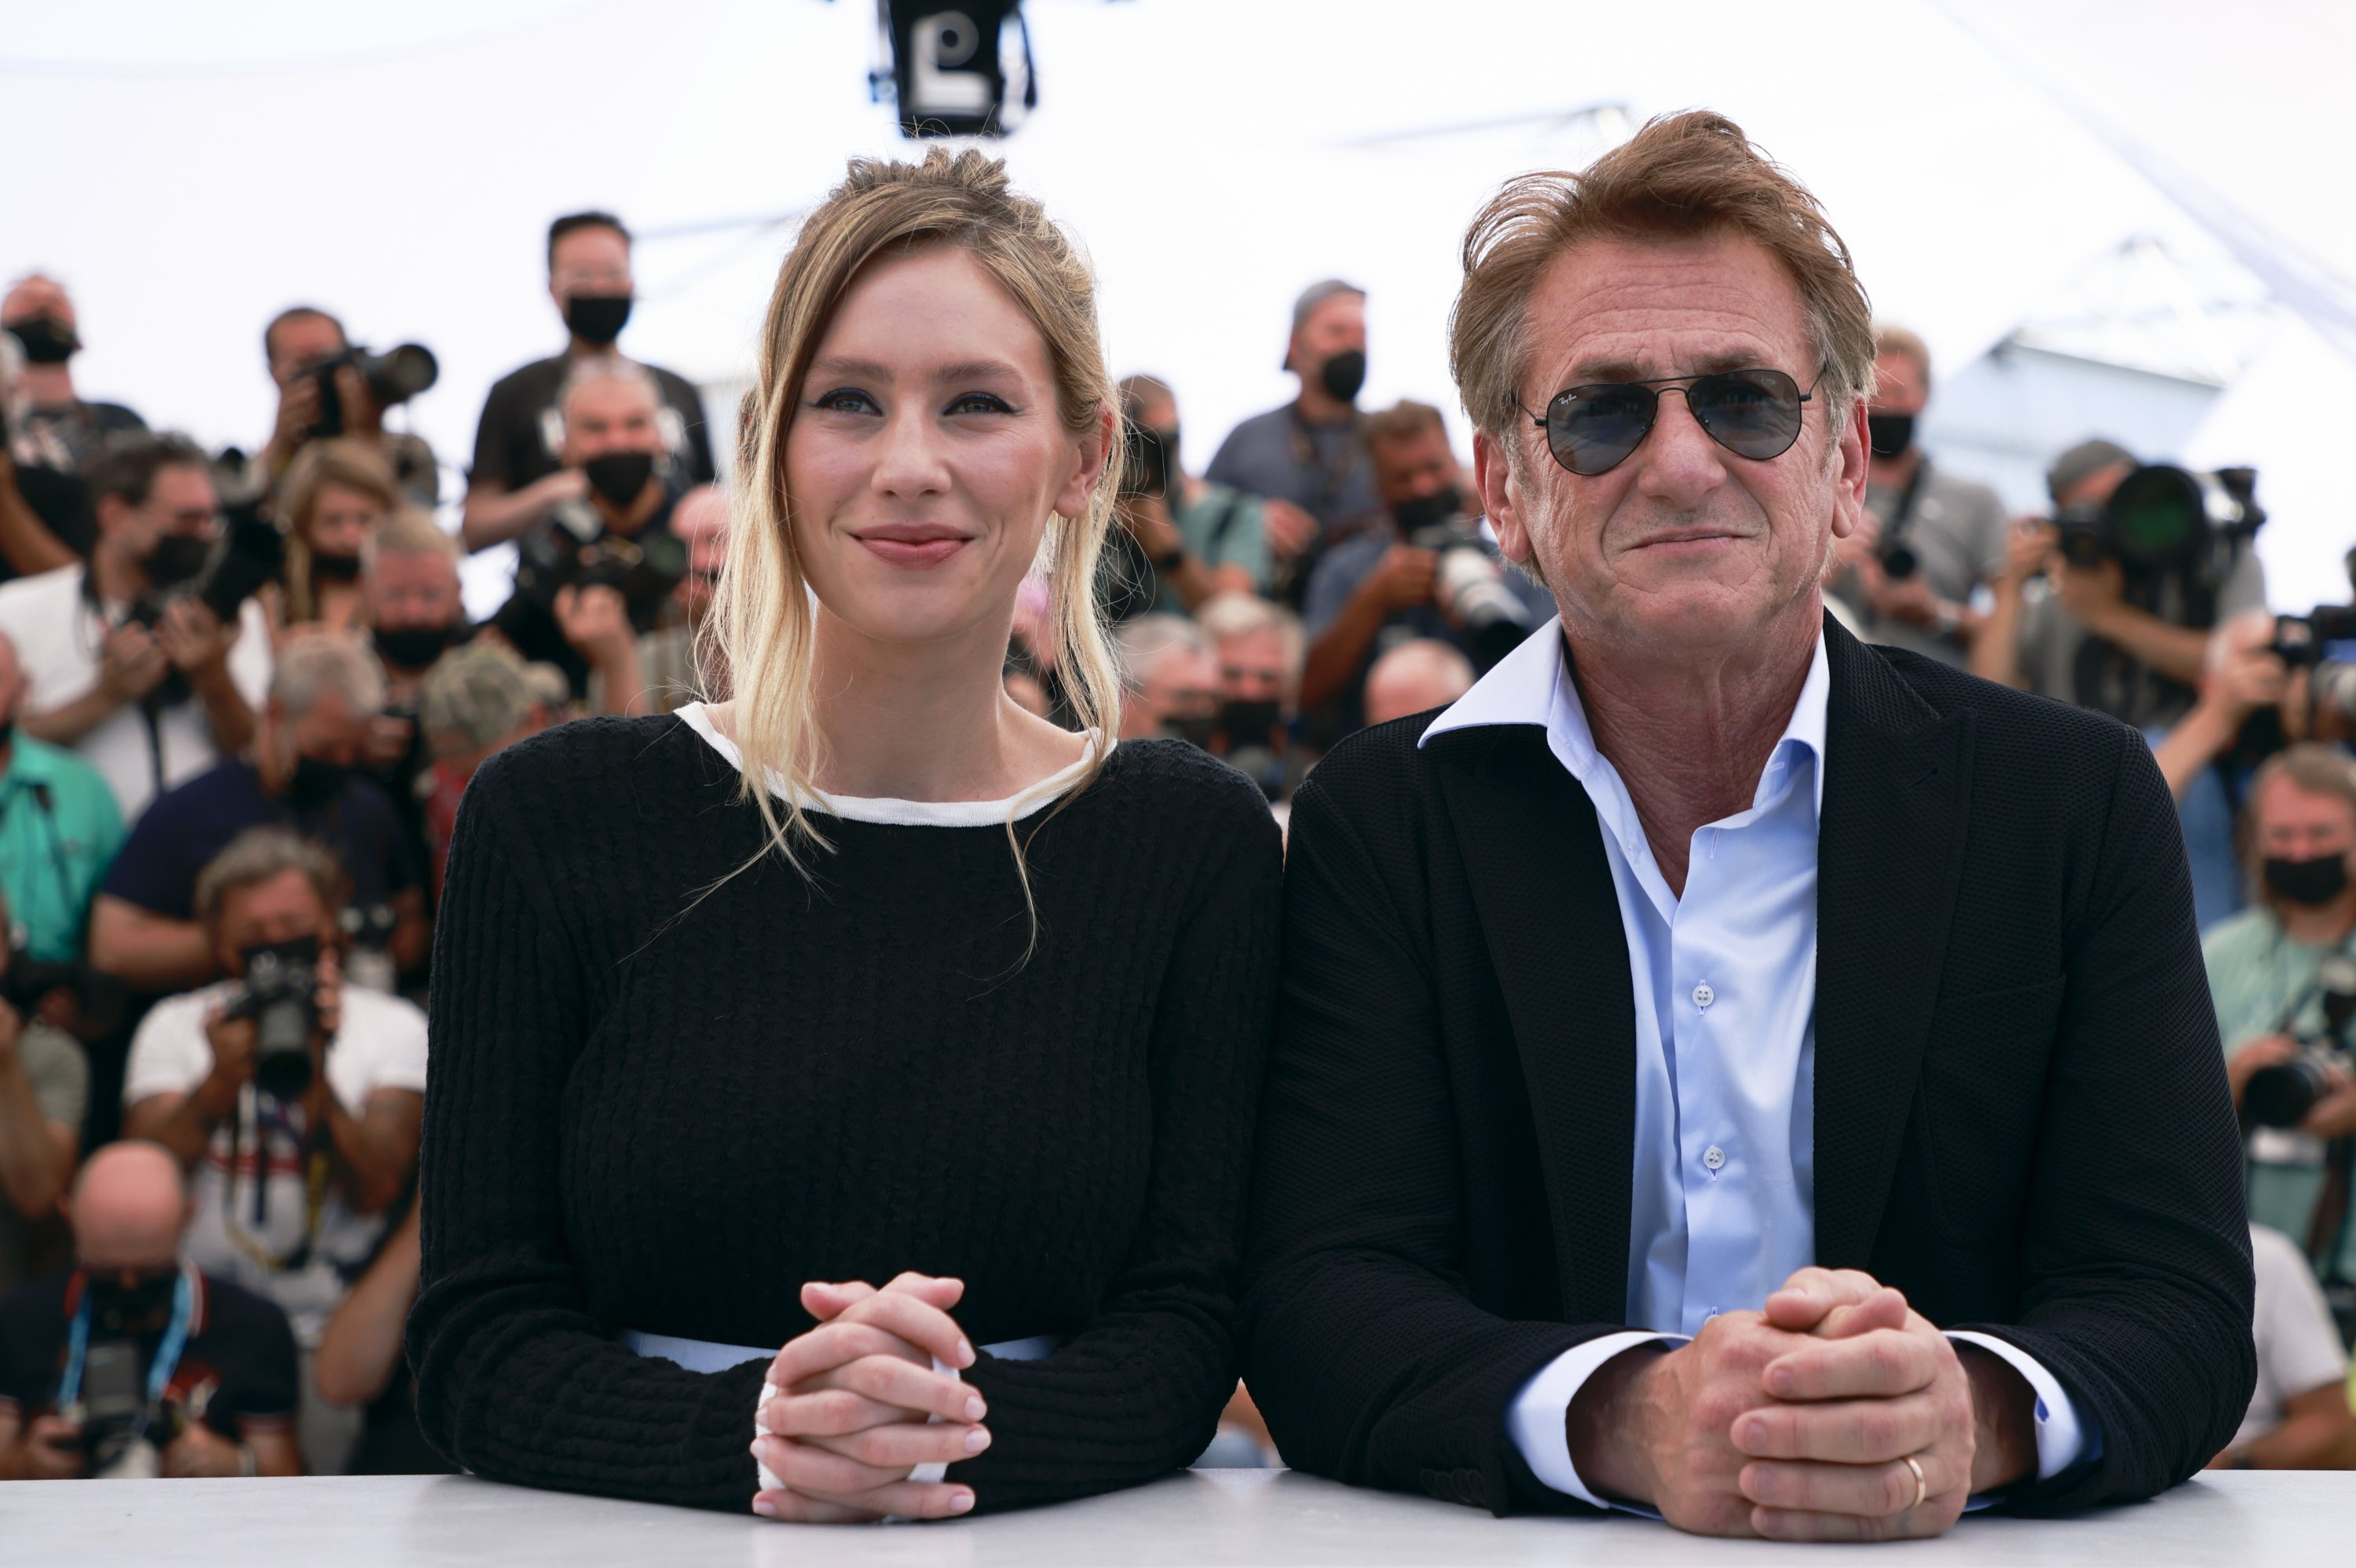 The 74th Cannes Film Festival – Photocall for the film 'Flag Day' in competition – Cannes, France, July 11, 2021. Director Sean Penn and cast member Dylan Penn pose. (Reuters Photo)